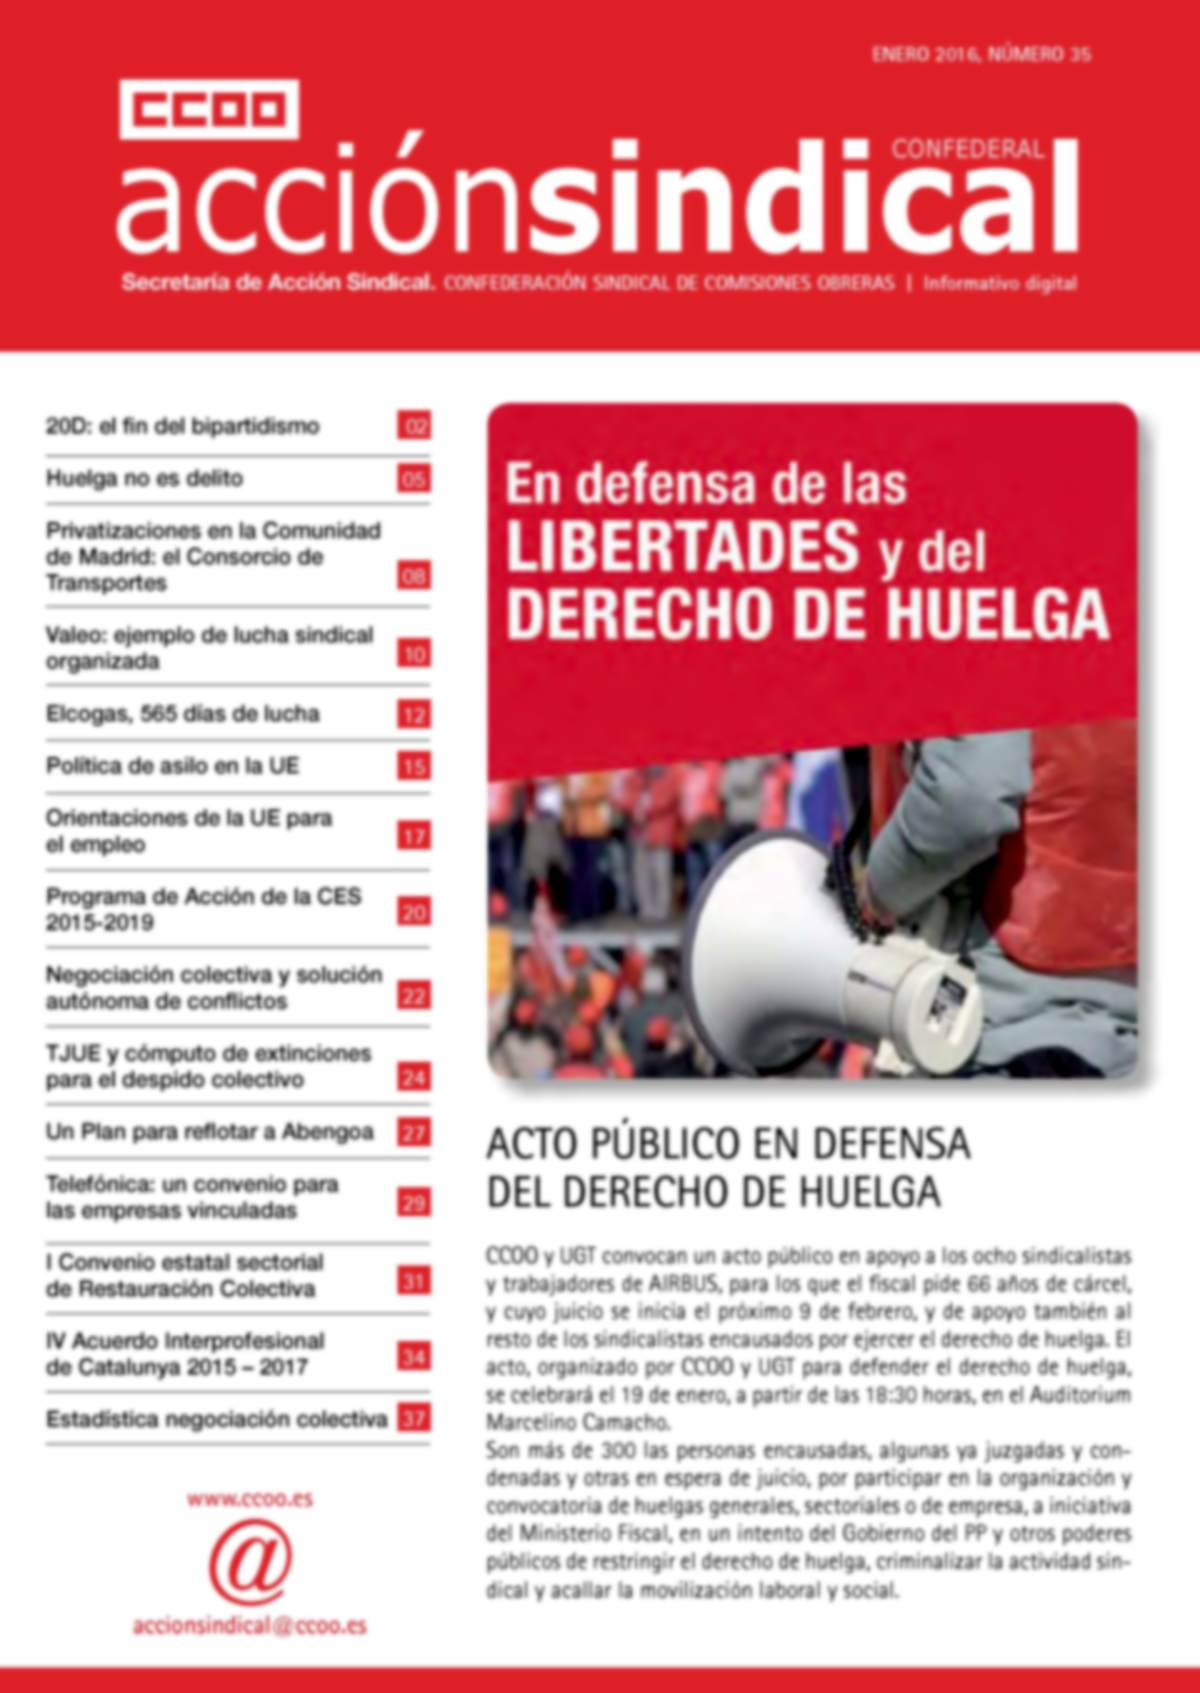 Revista de Acción Sindical Confederal, nº 35